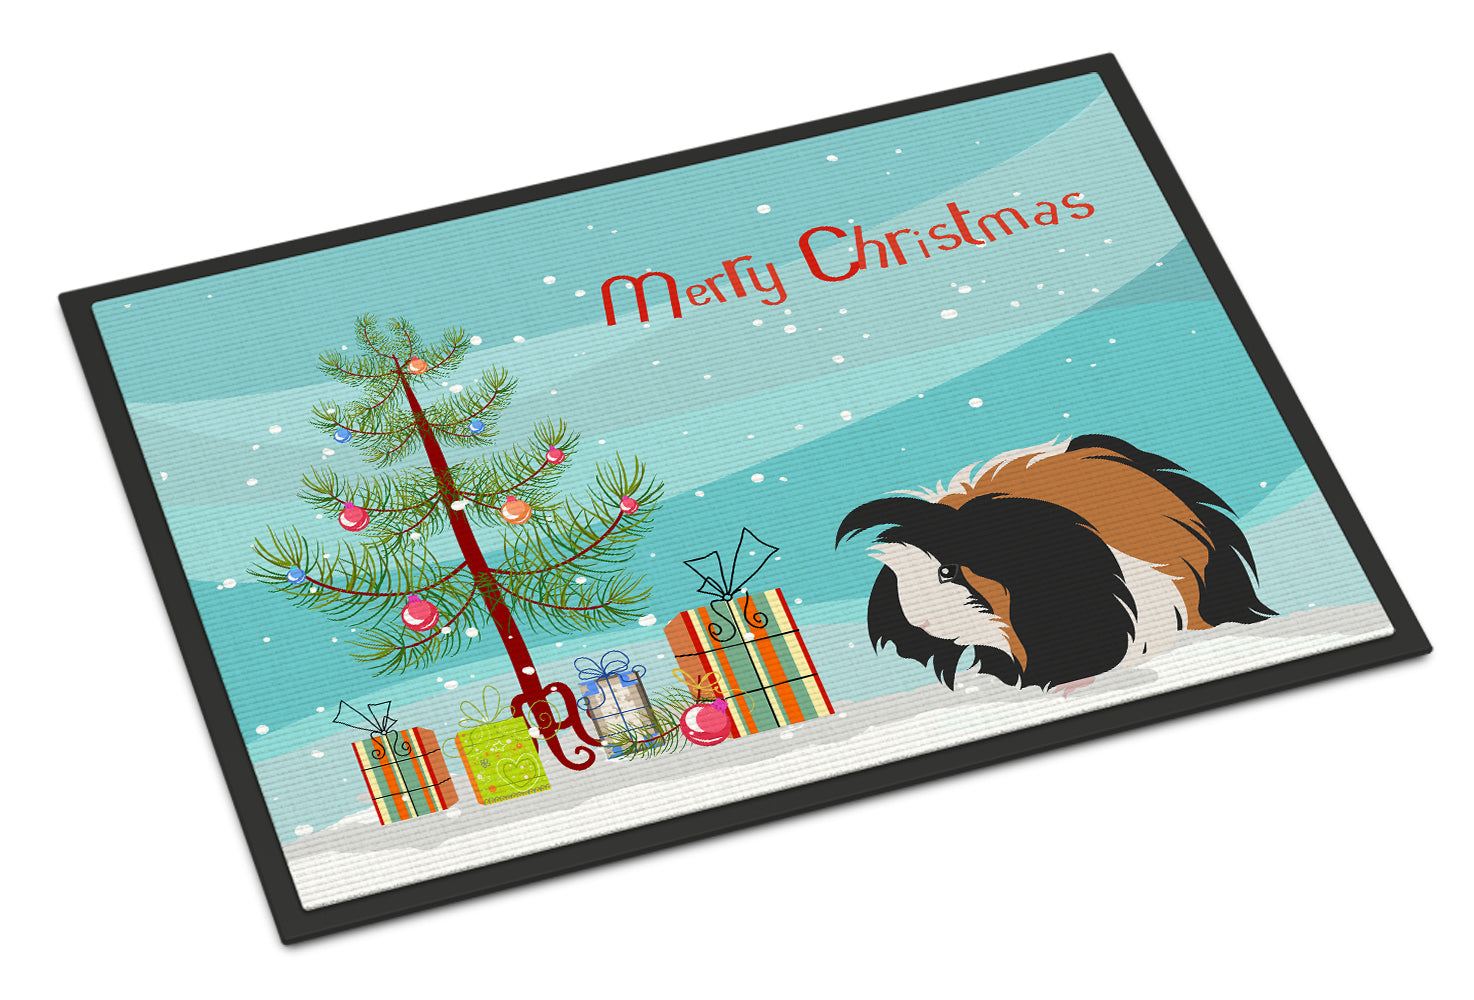 Sheba Guinea Pig Merry Christmas Indoor or Outdoor Mat 18x27 CK4445MAT by Caroline's Treasures